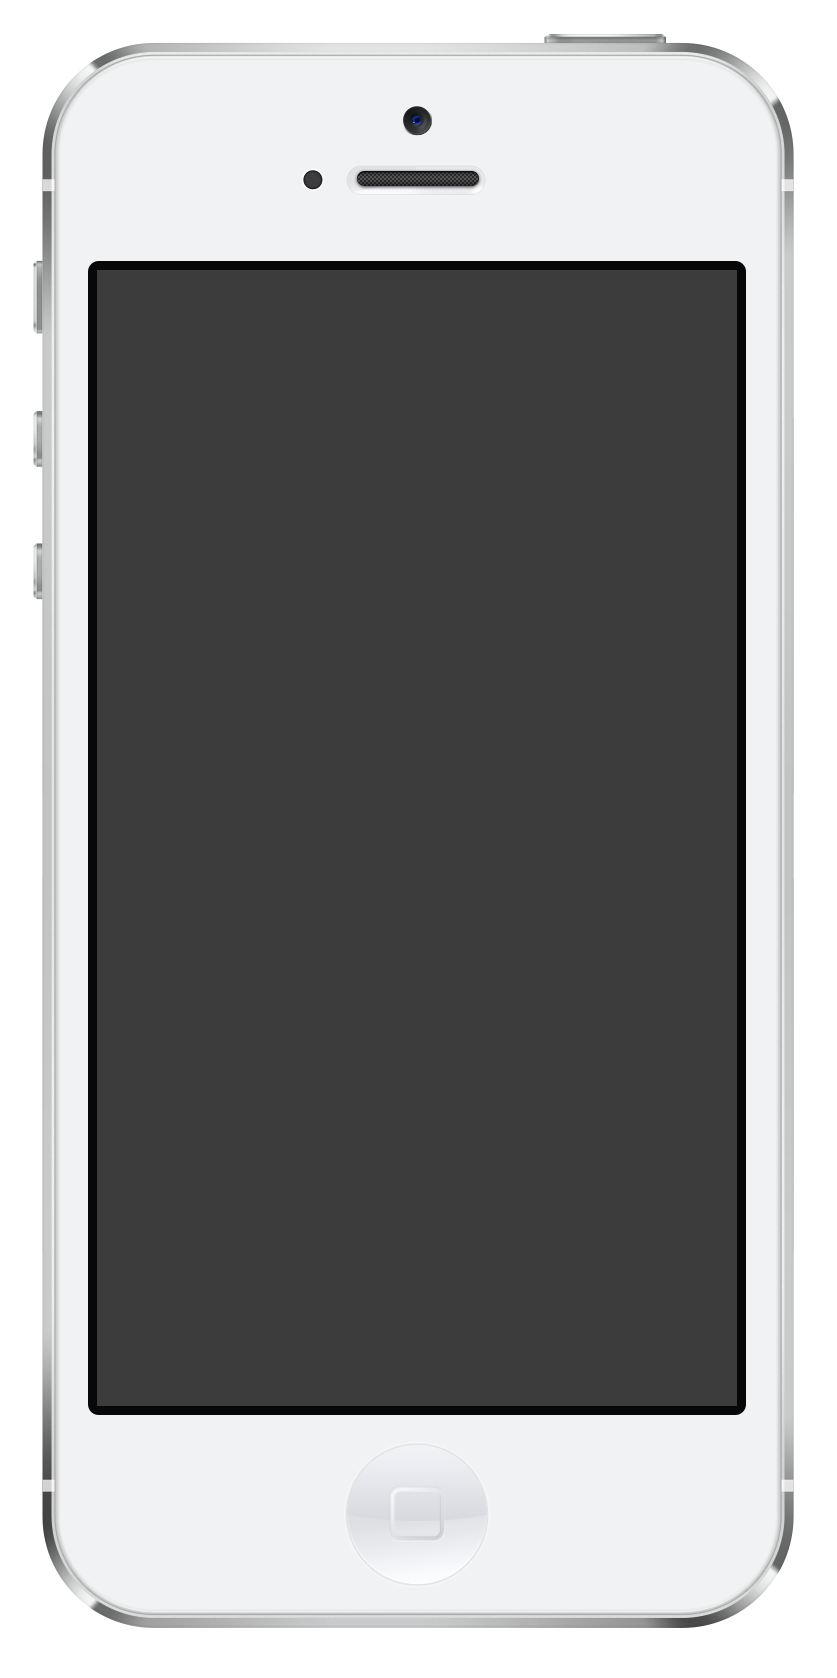 Apple iphone clipart free banner stock Iphone PNG Black And White Transparent Iphone Black And White.PNG ... banner stock